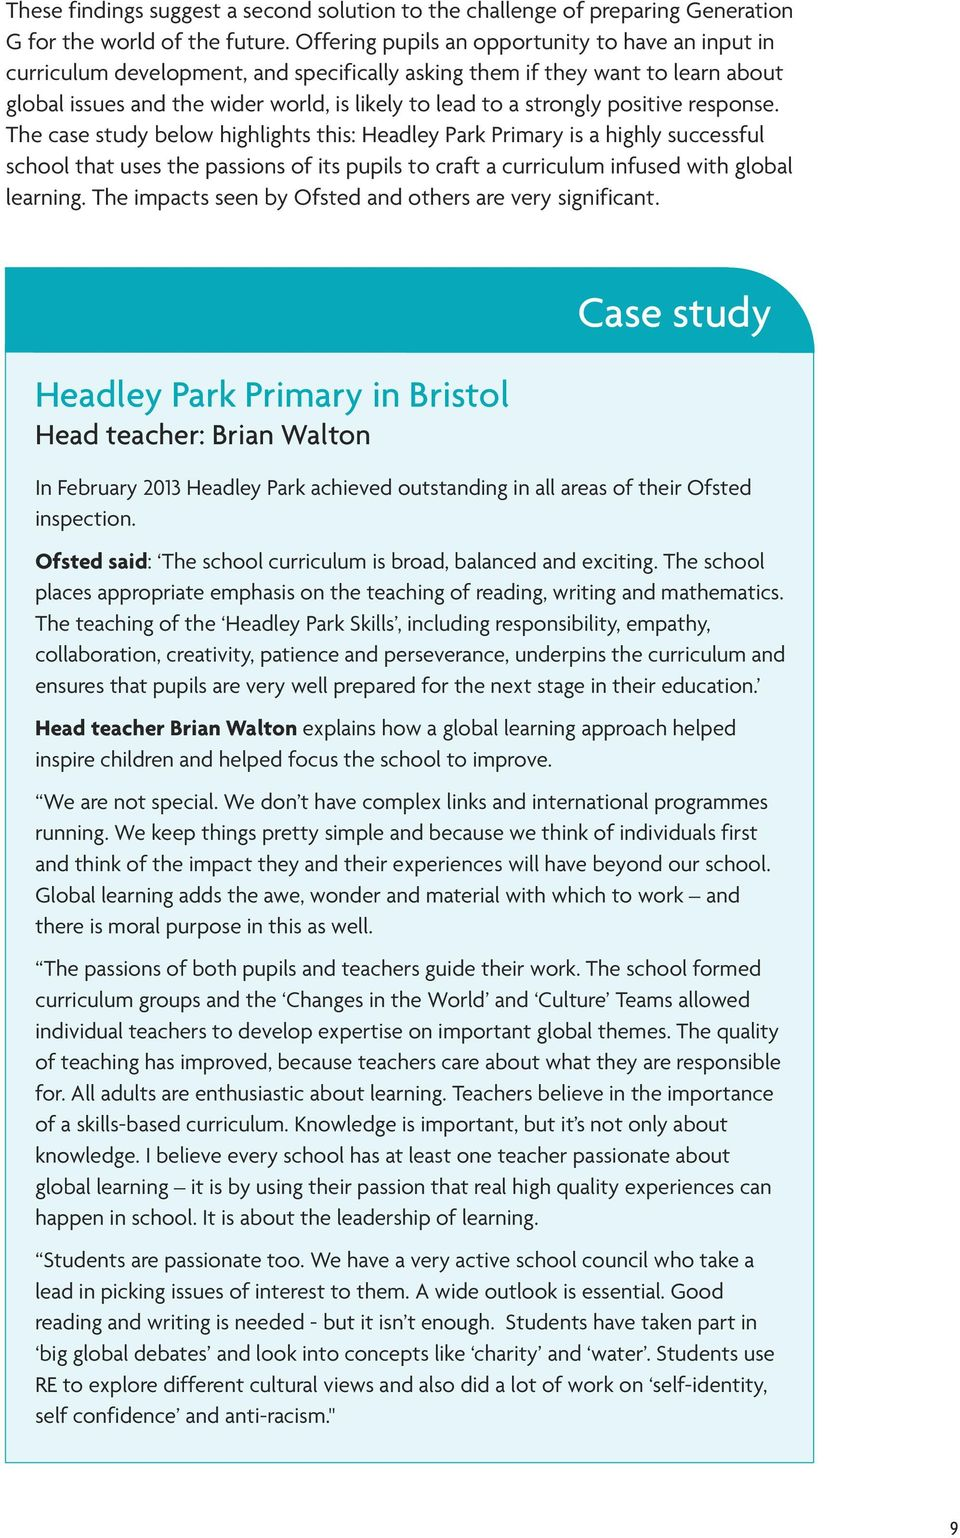 positive response. The case study below highlights this: Headley Park Primary is a highly successful school that uses the passions of its pupils to craft a curriculum infused with global learning.